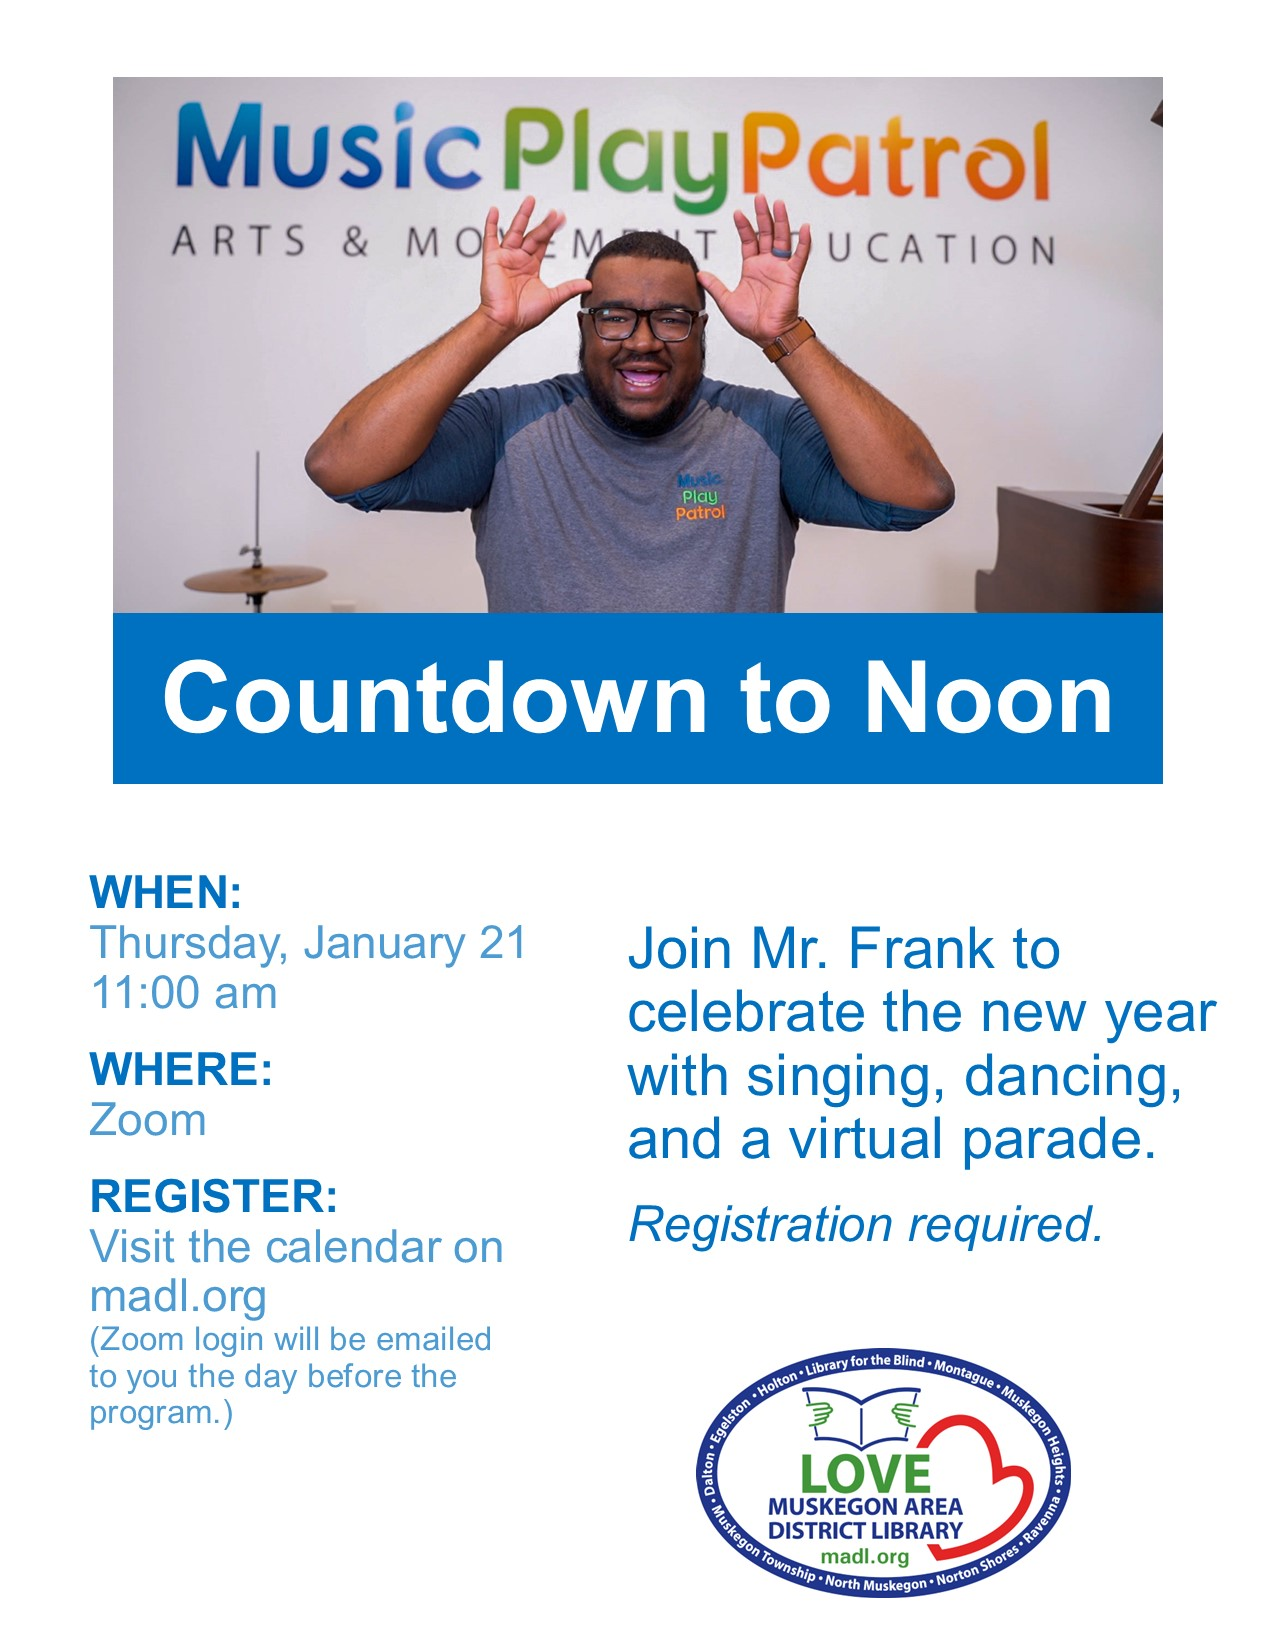 Man with glasses on and mouth open holding his hands up to his head like antlers and caption reading Music Play Patrol Countdown to Noon